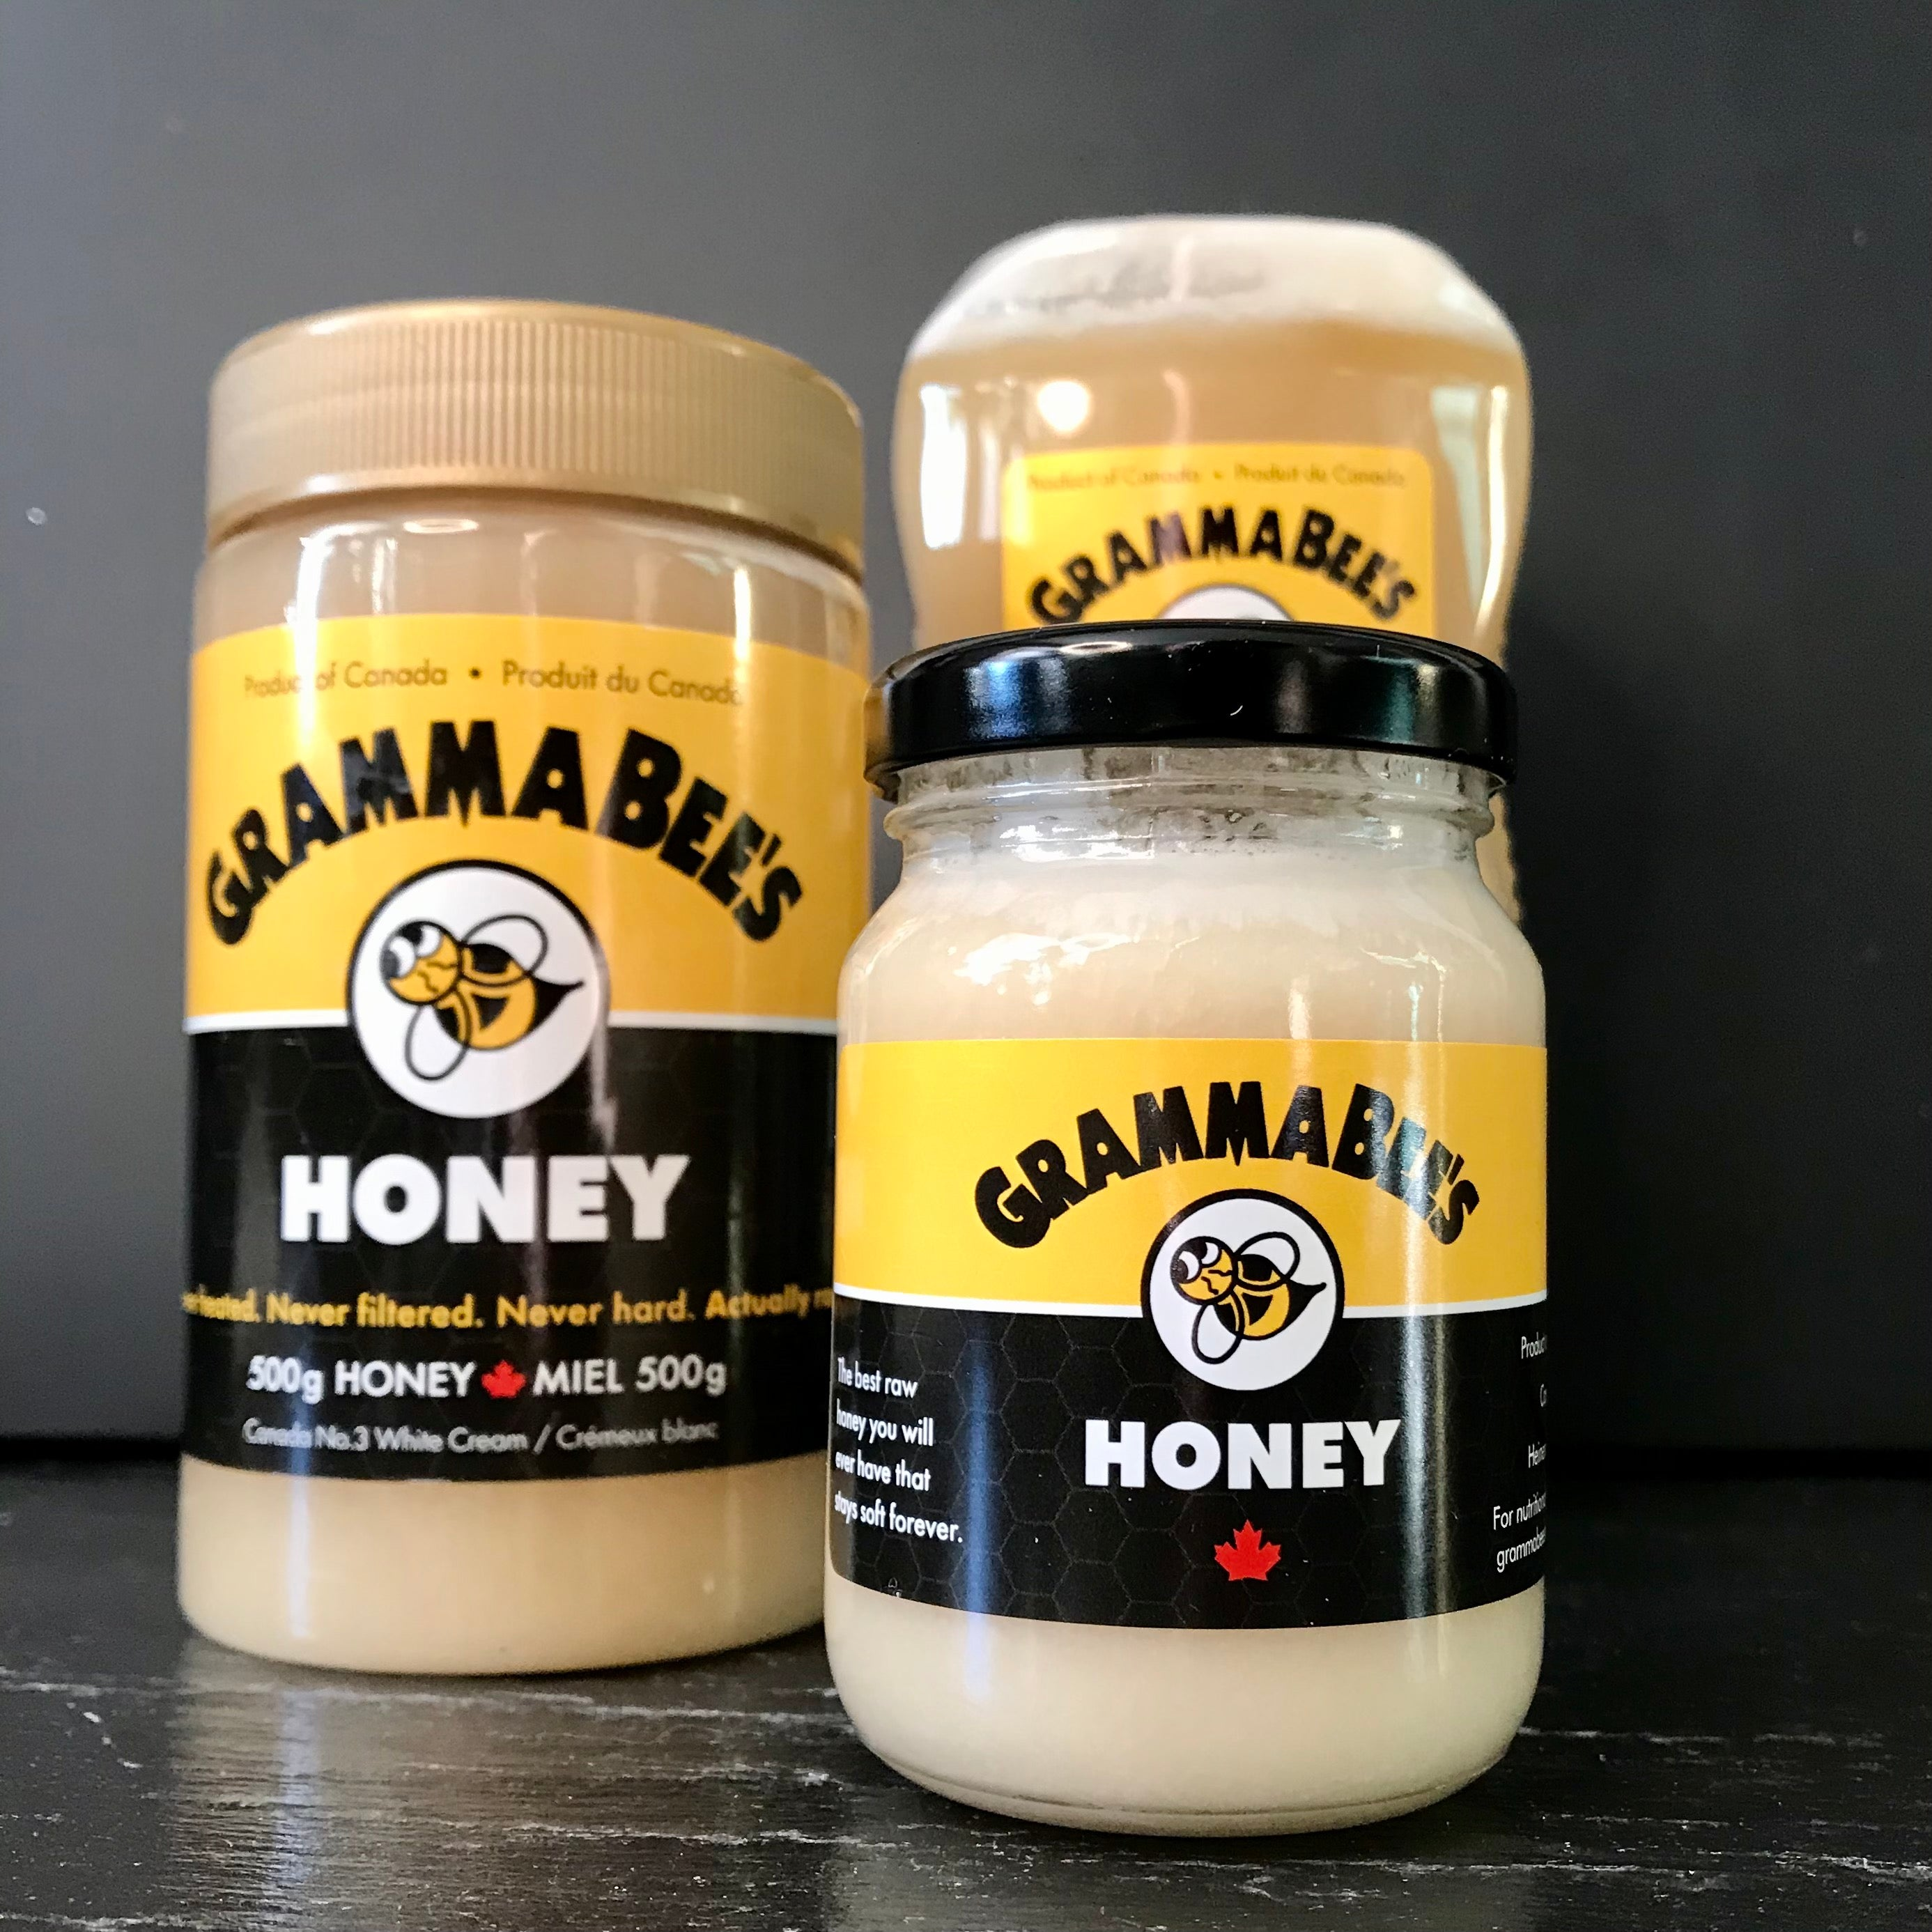 Gramma Bee's Honey